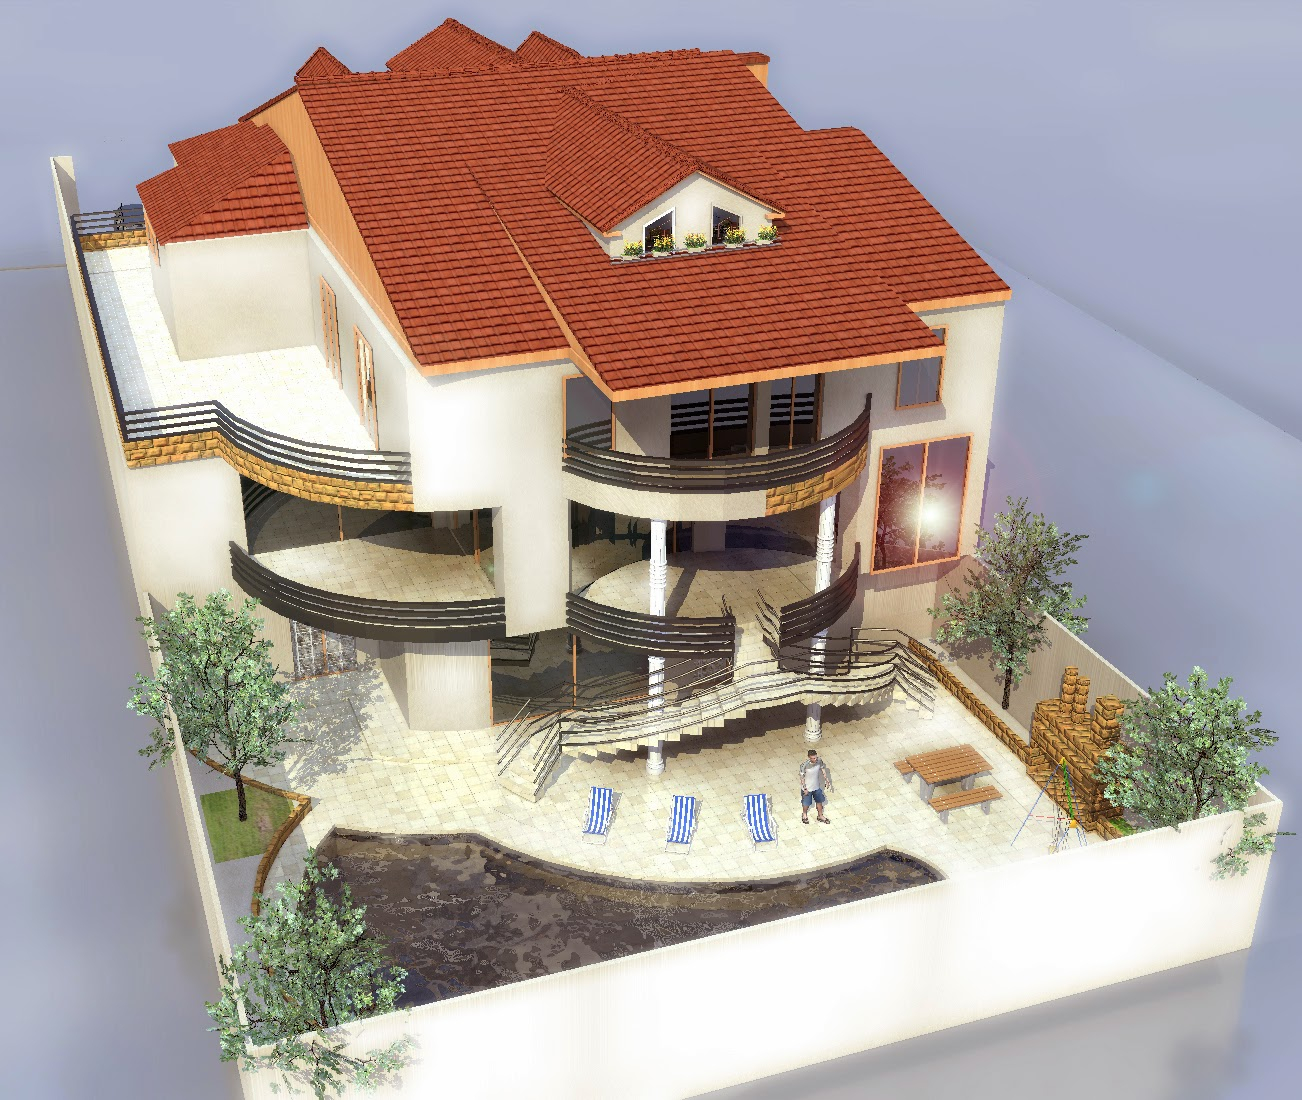 Plan architecte maison gratuit - Construction de maison 3d ...